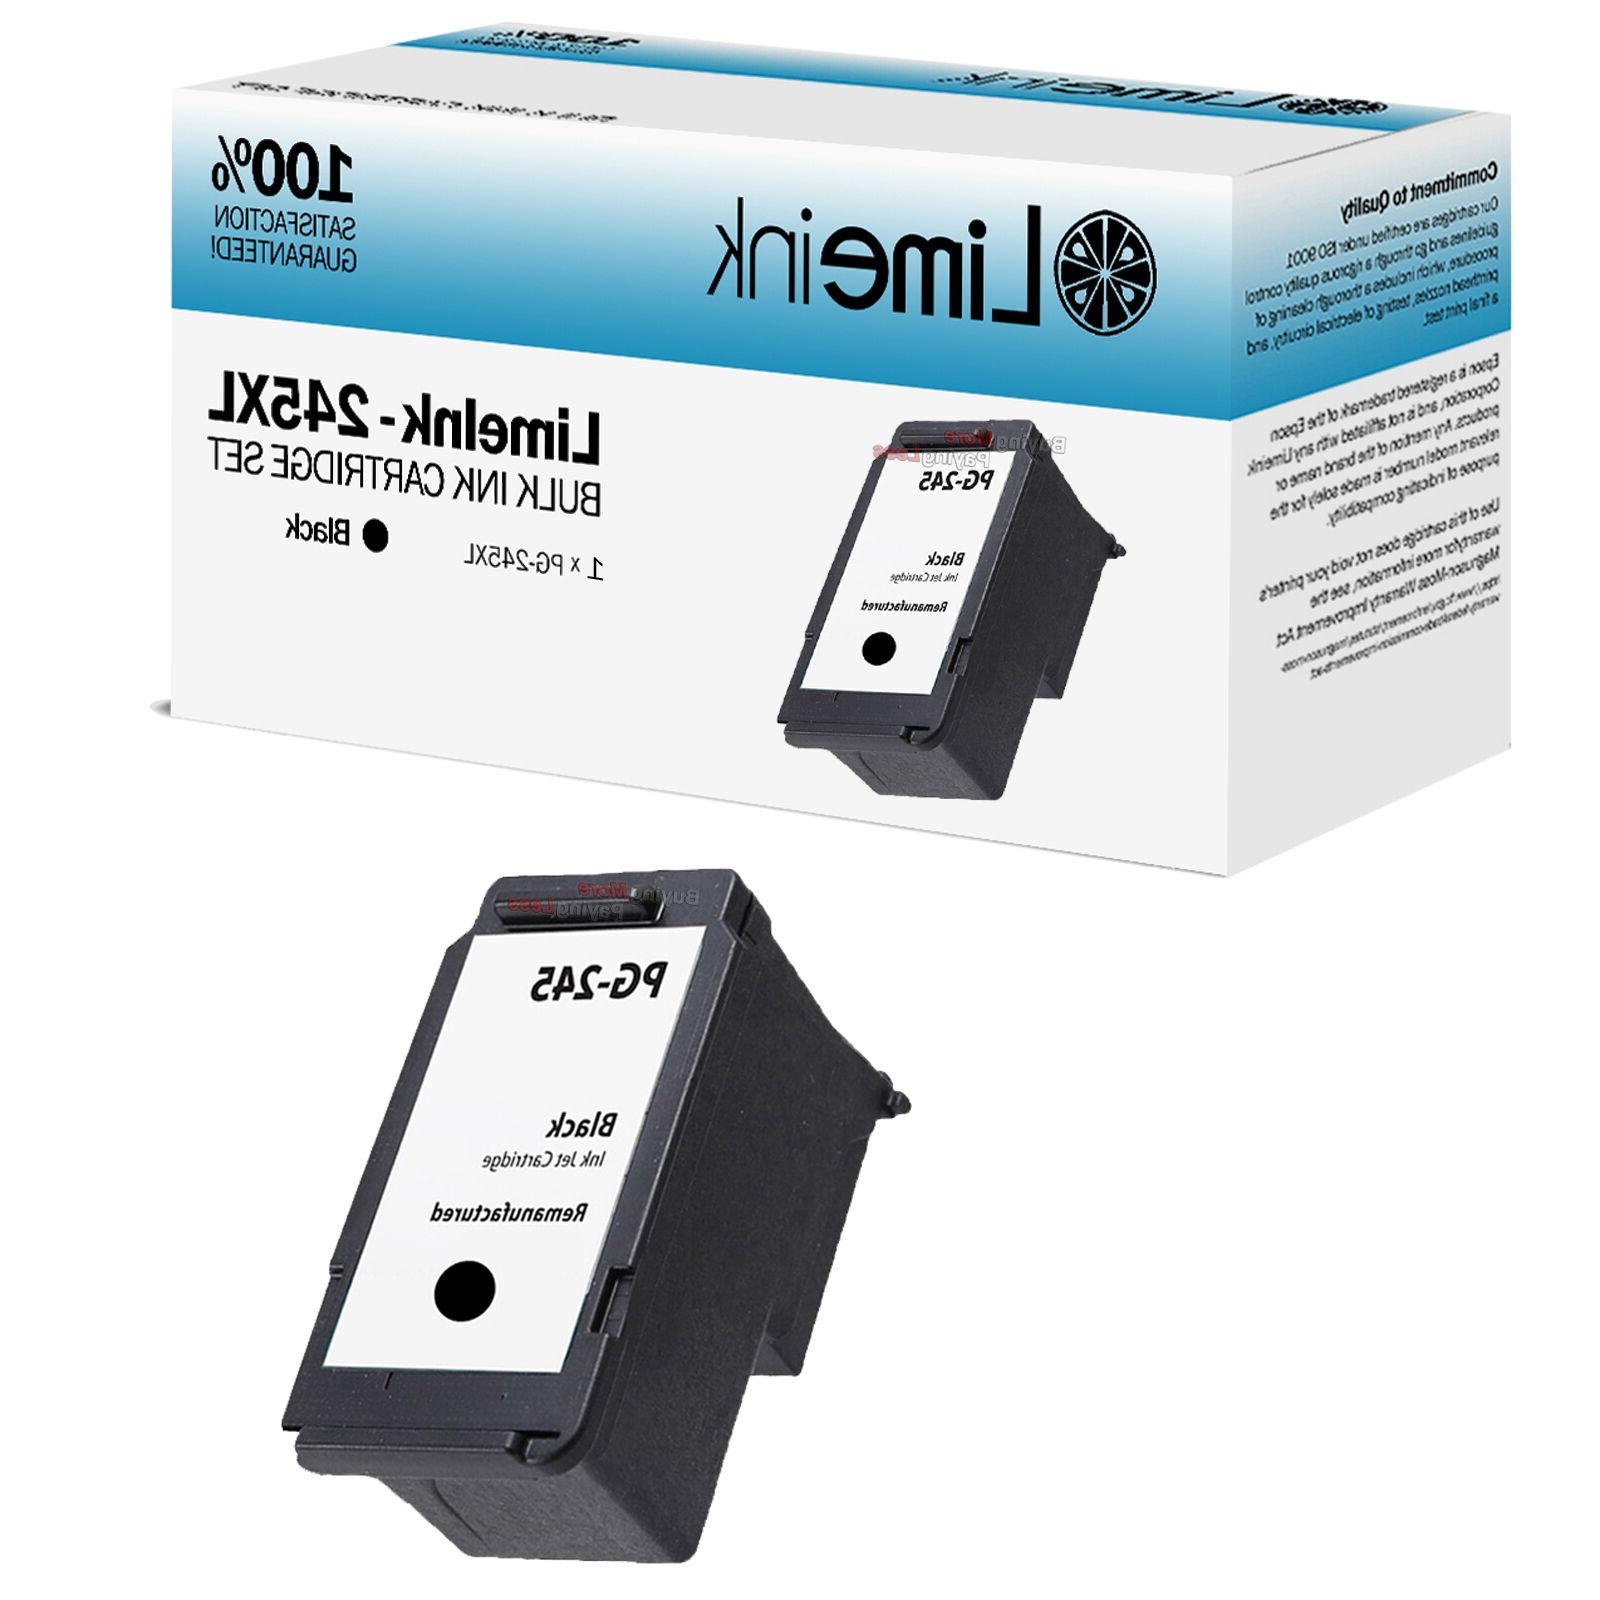 1 Black Ink Cartridges For Canon iP2820 MG2420